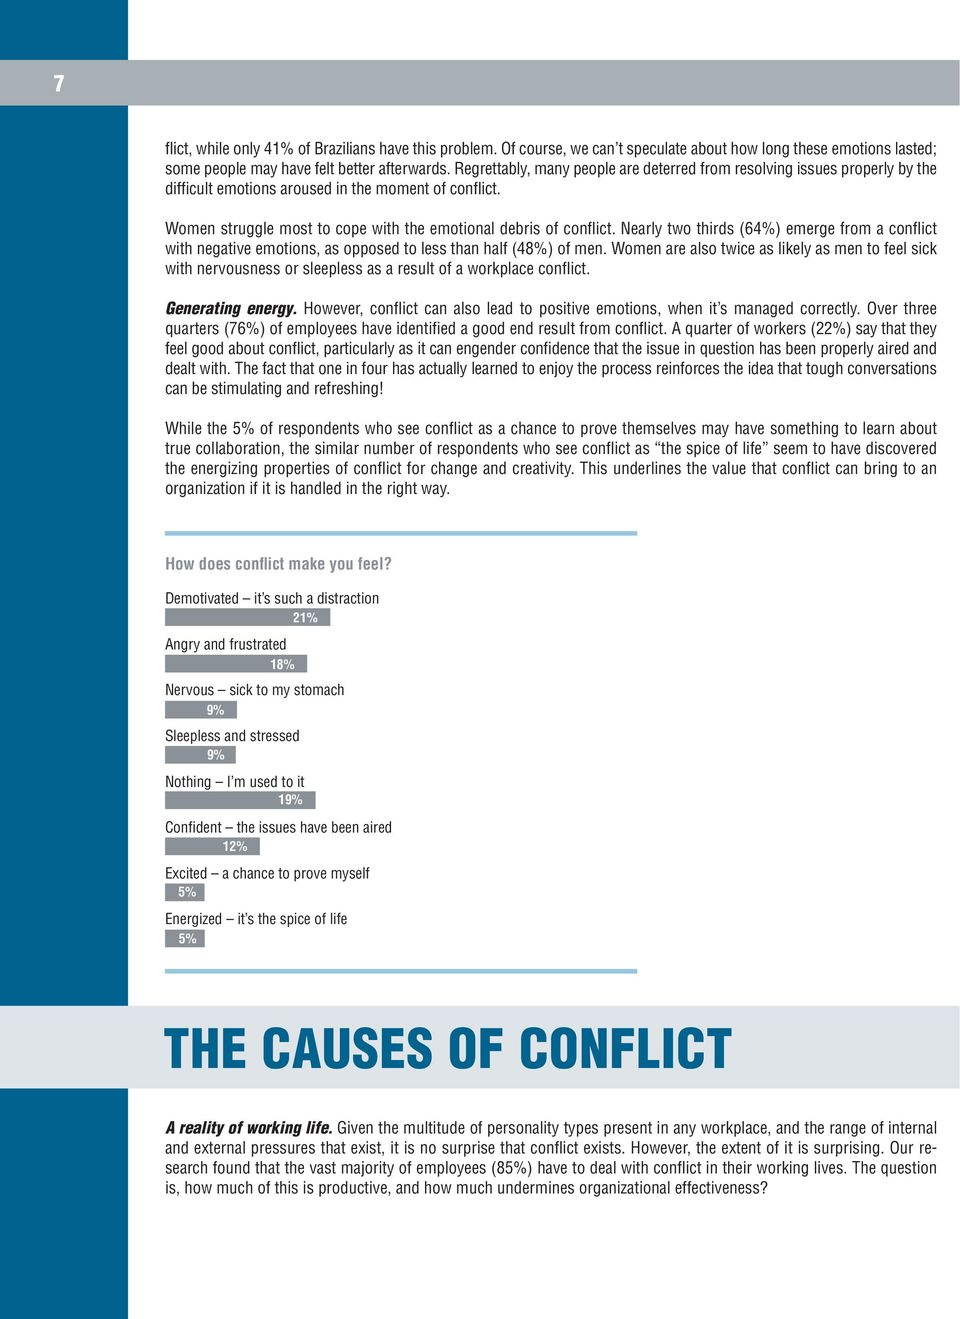 Nearly two thirds (64%) emerge from a conflict with negative emotions, as opposed to less than half (48%) of men.